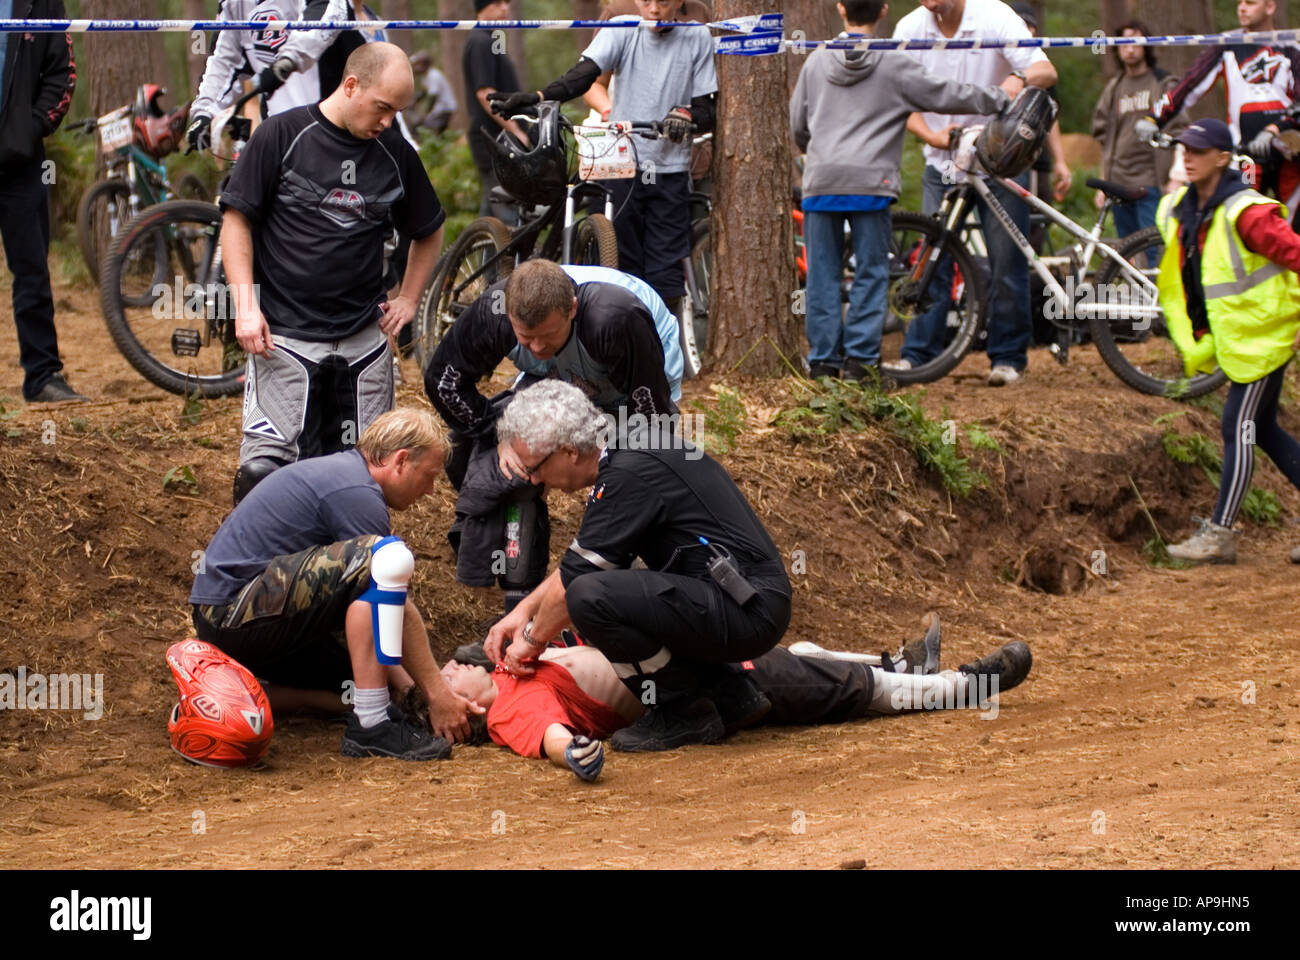 Exteme Medics attend a mountain bike crash at the final Round of the National 4X Series at Beds Fat Trax Chicksands Stock Photo